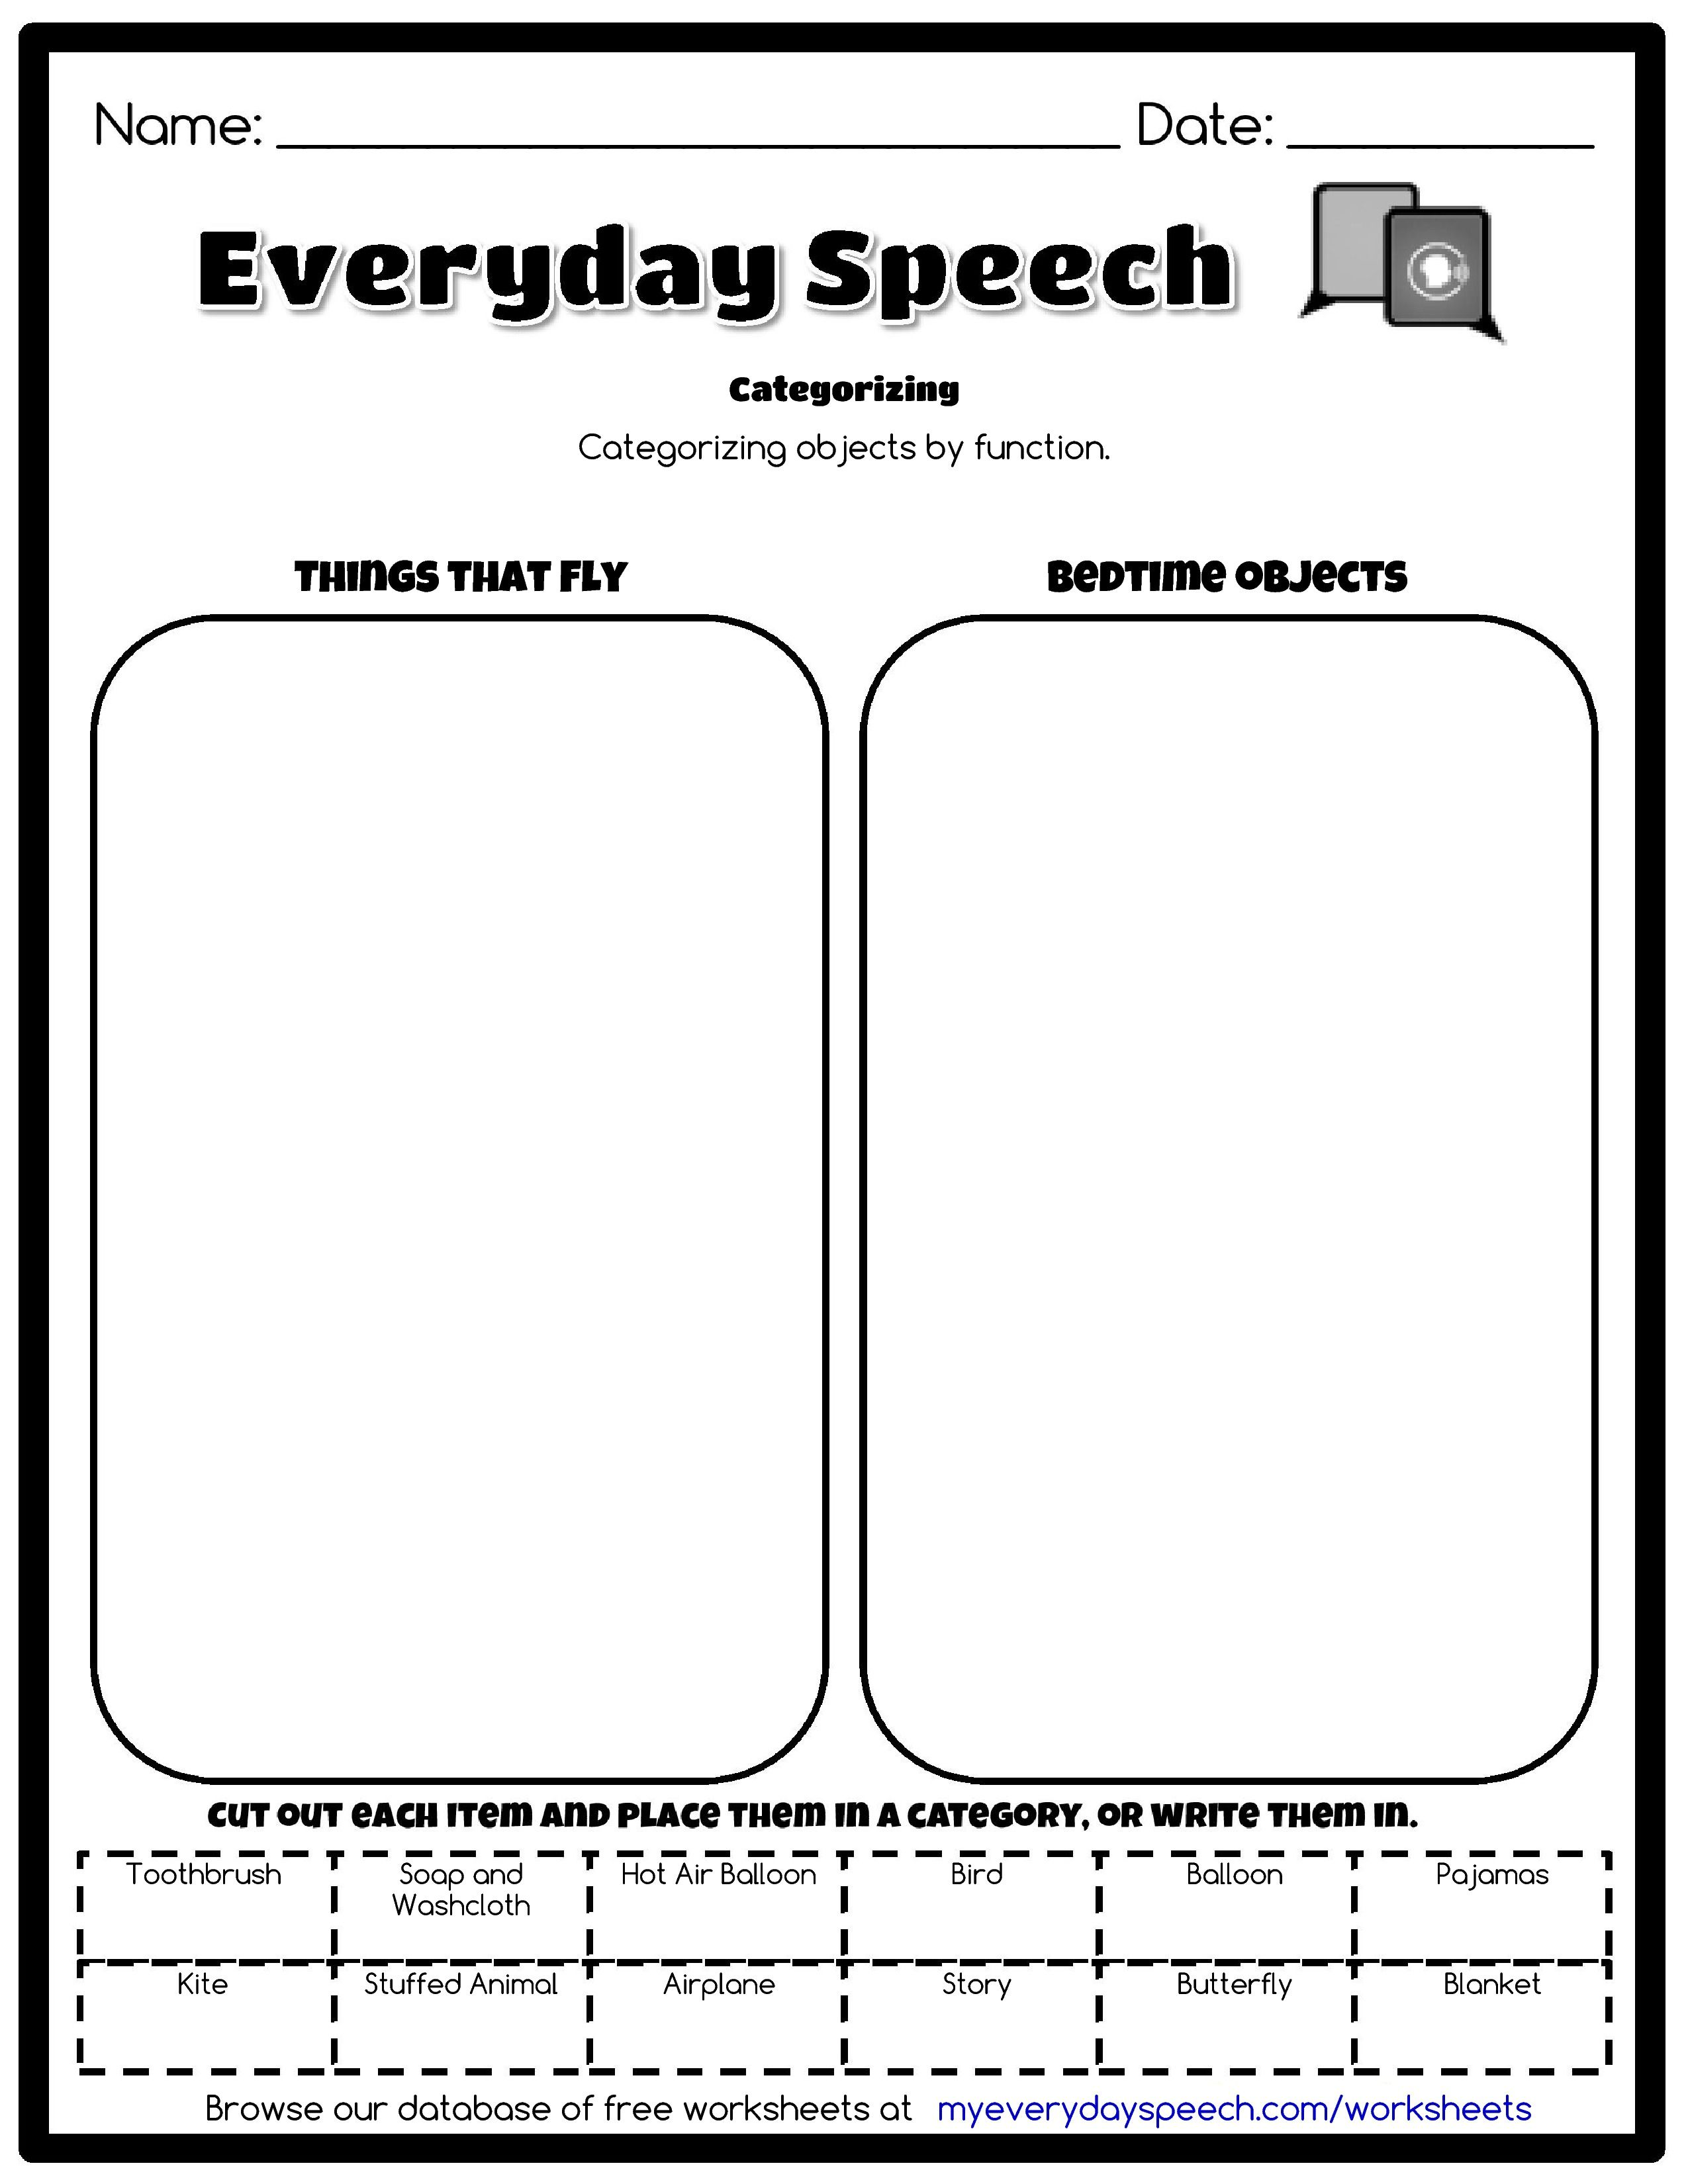 Worksheets Free Worksheet Creator check out the worksheet i just made using everyday speechs creator categorizing categorizing